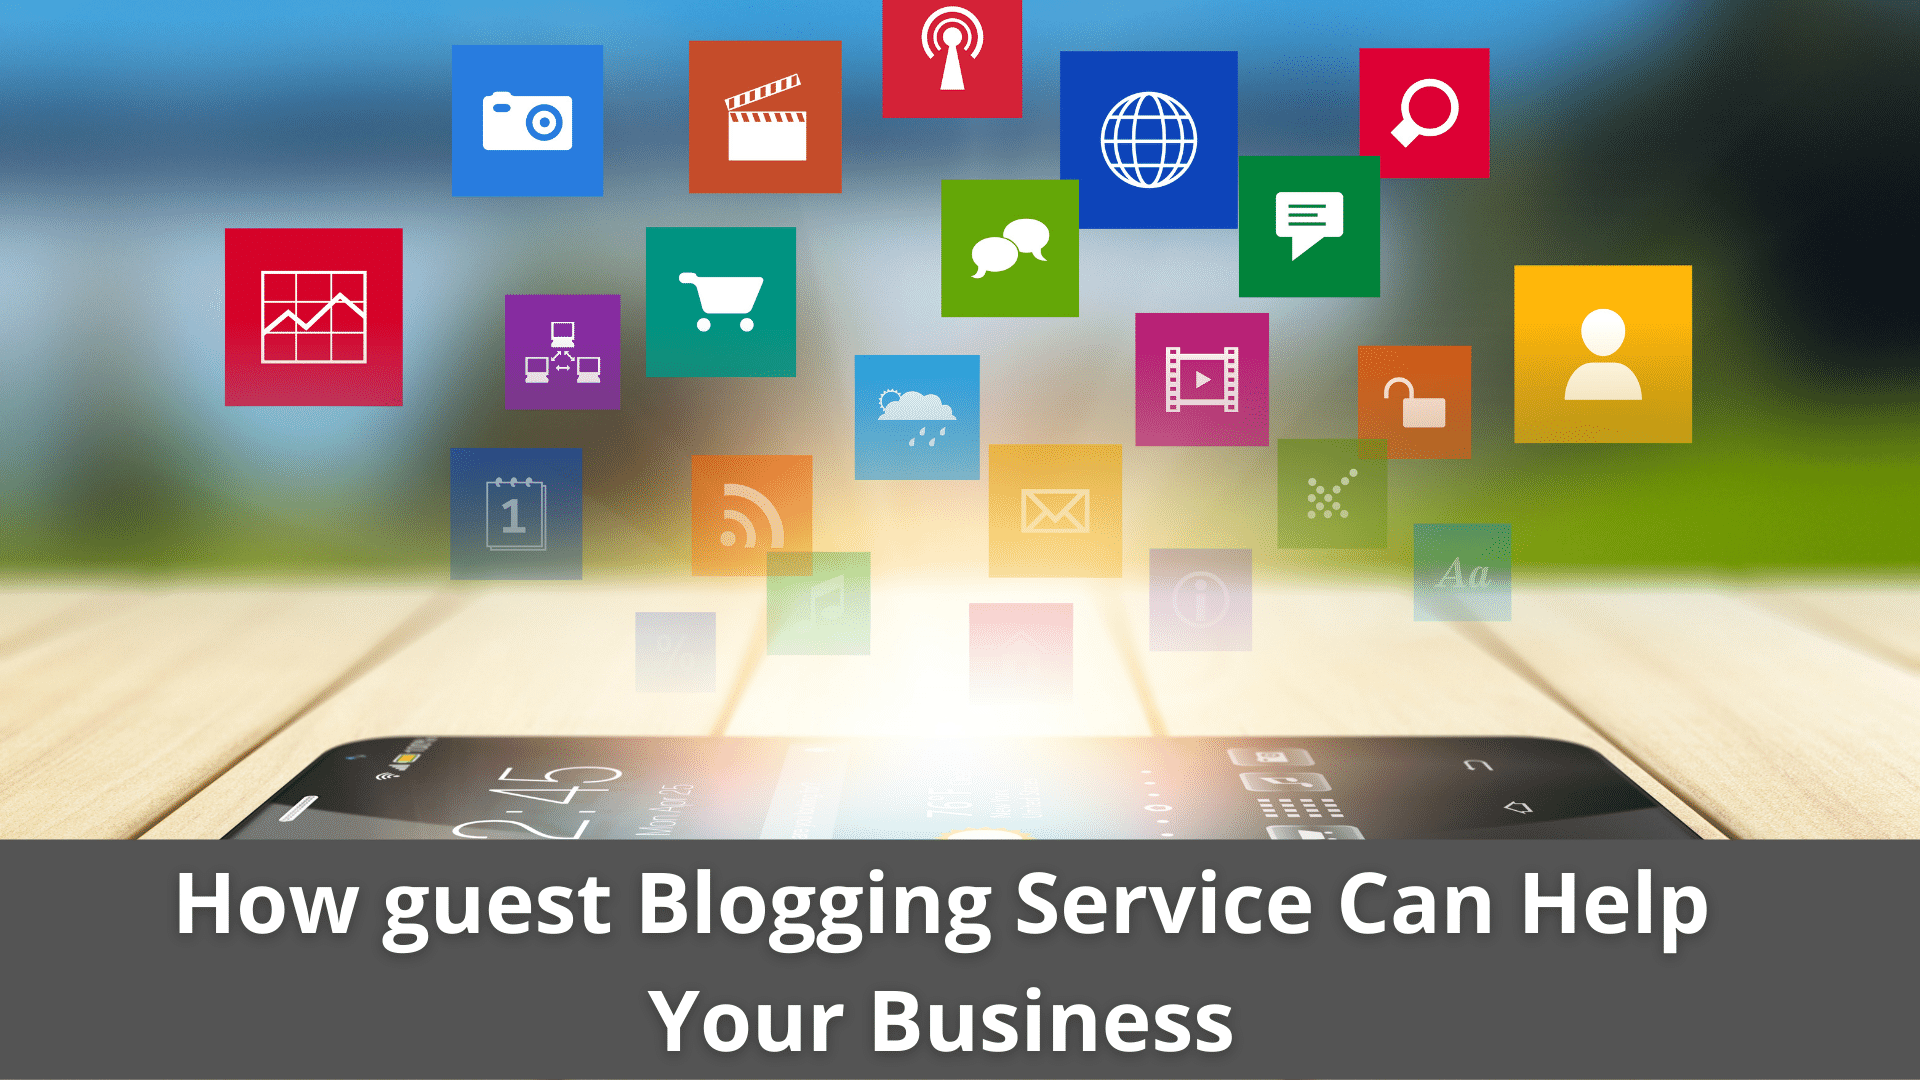 How guest Blogging Service Can Help Your Business 39